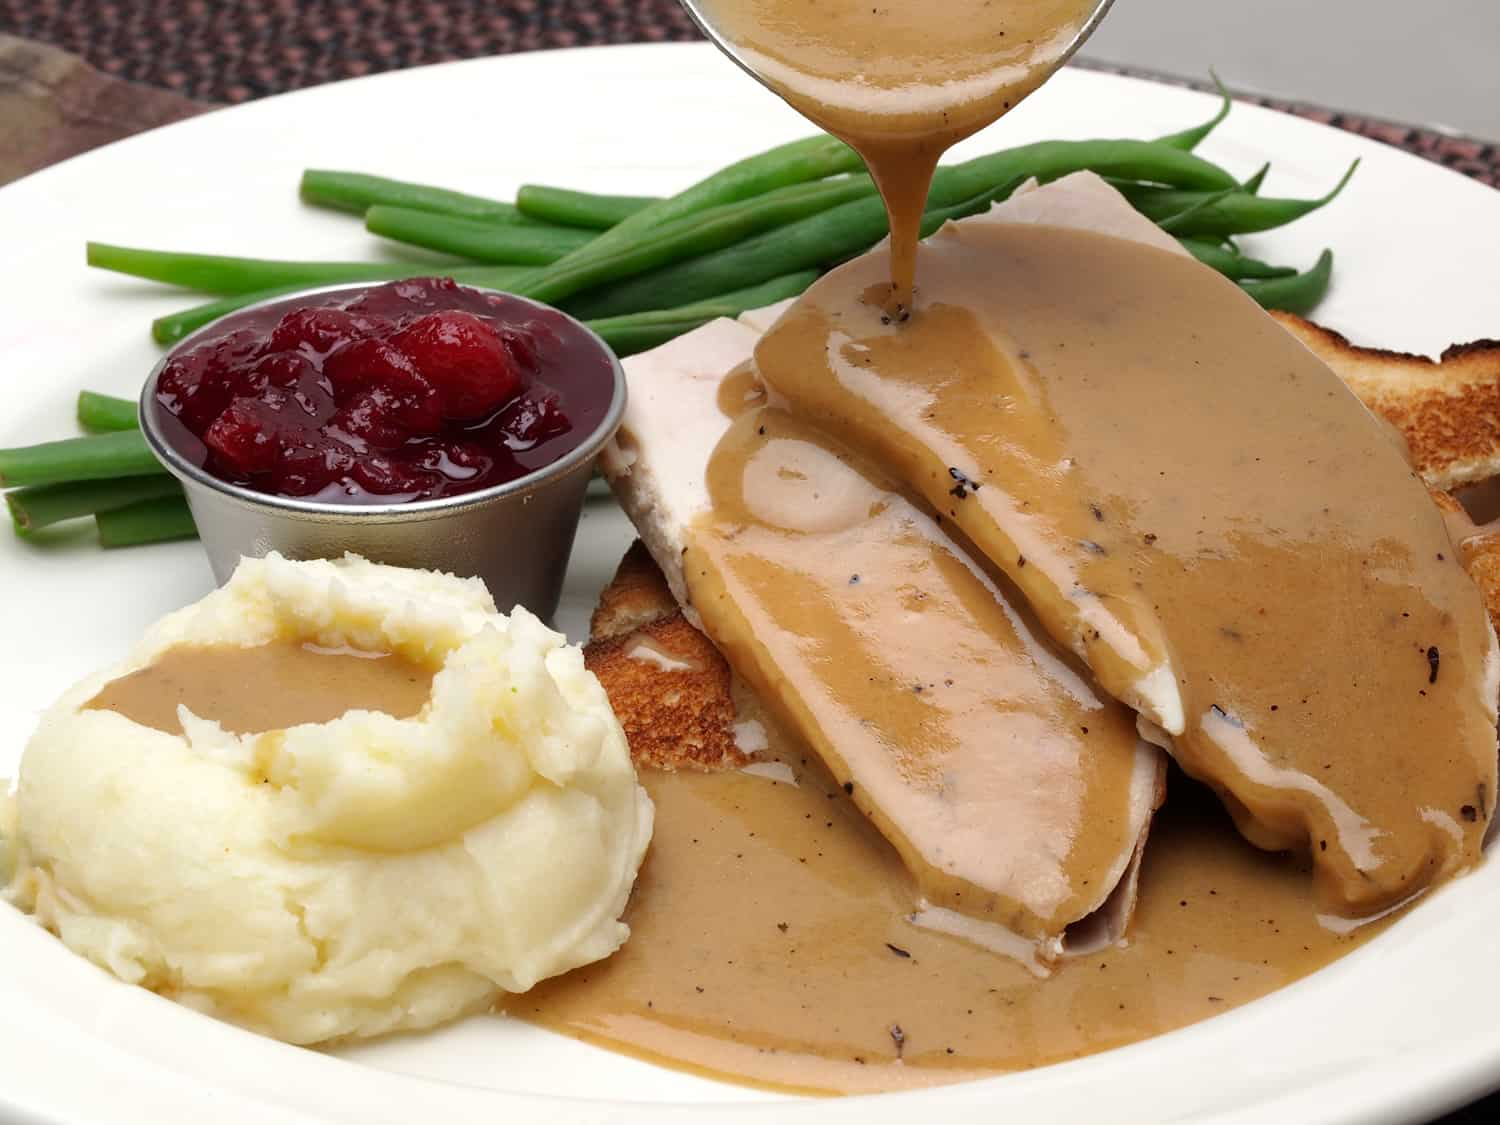 Open Face turkey sandwich with green beans, cranberry sauce and mashed potatoes with gravy pouring over potatoes and meat.